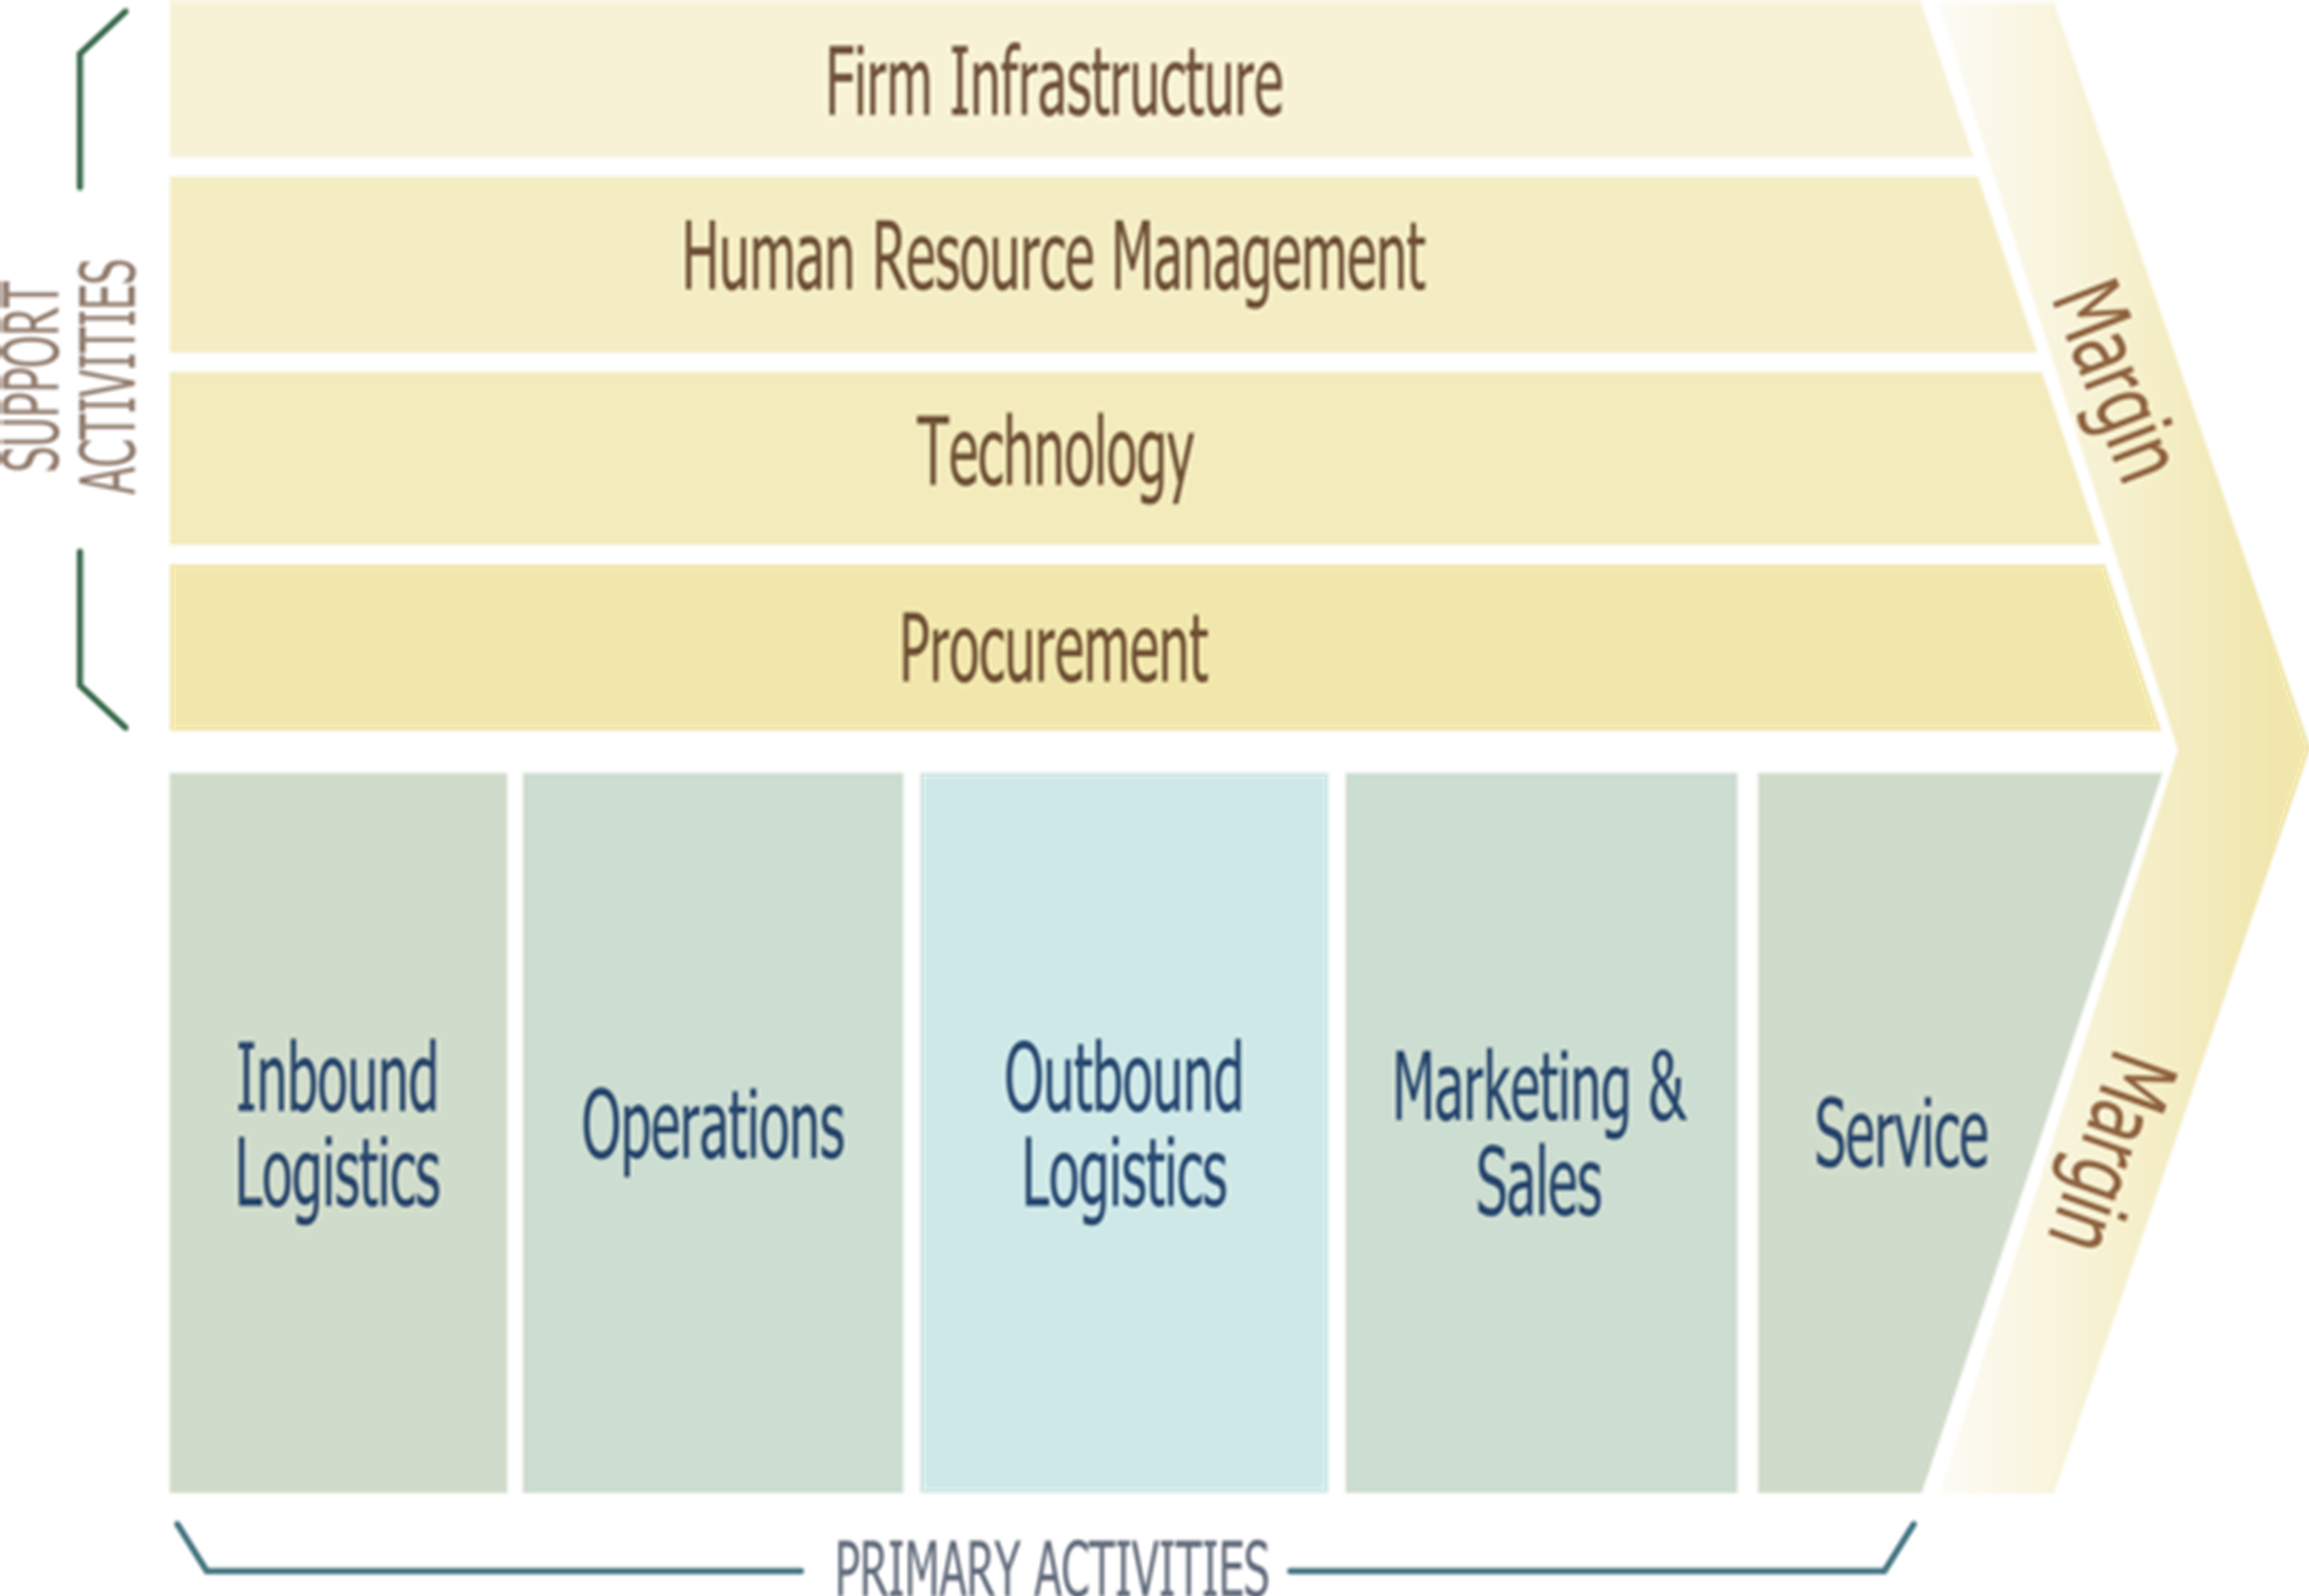 value chain system To better understand the activities through which a firm develops a competitive advantage and creates shareholder value, it is useful to separate the business system into a series of value-generating activities referred to as the value chain.